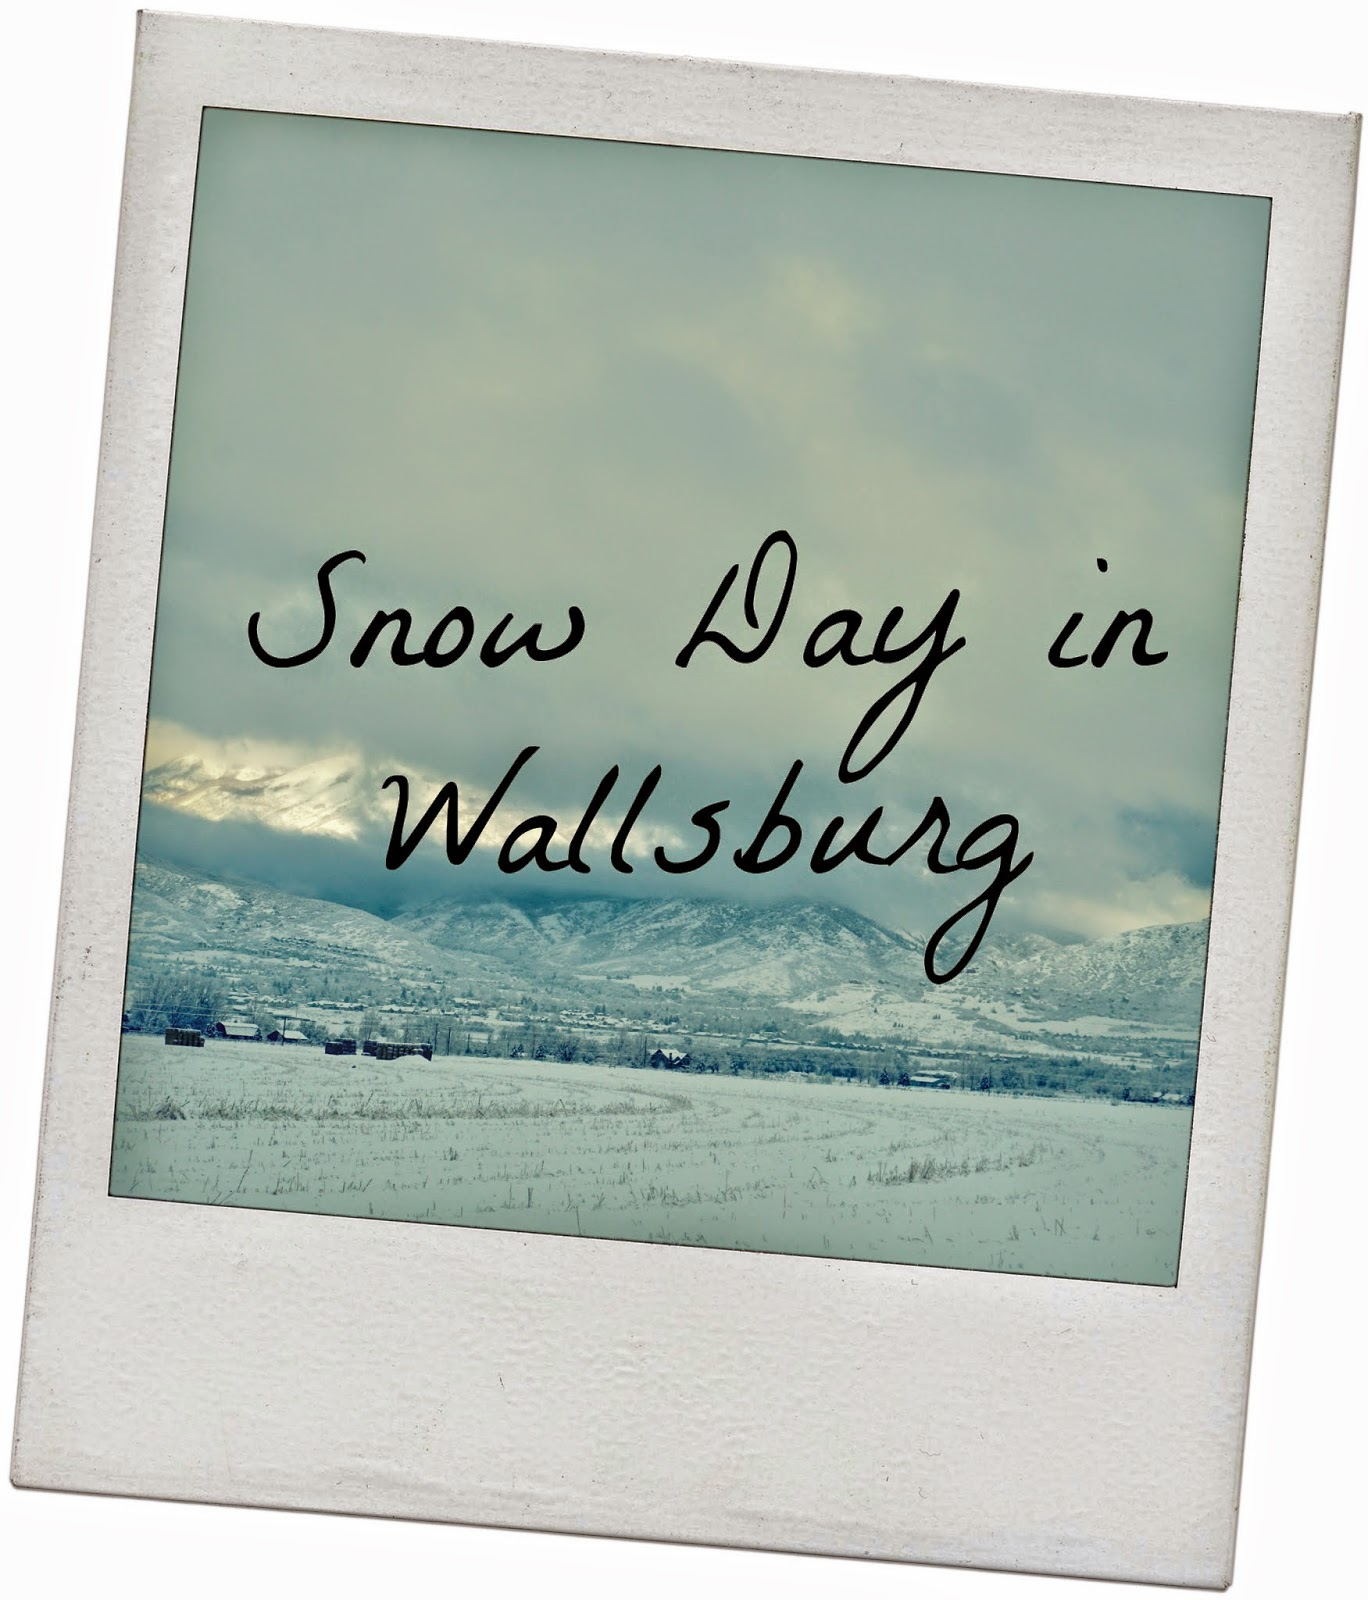 Snow Day in Wallsburg